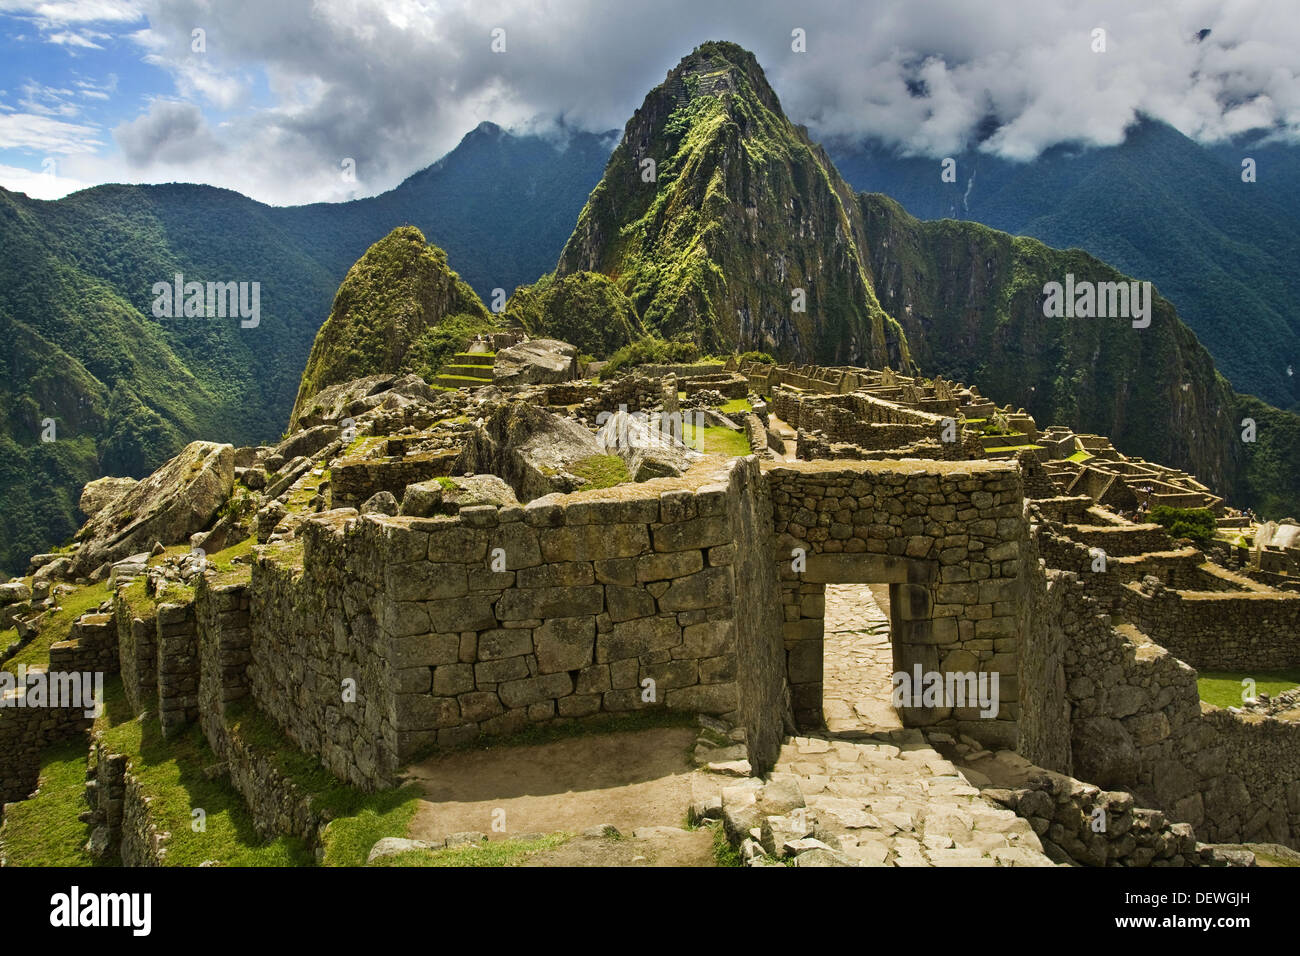 incan civilization Smallpox causing disaster for the incas 1527 ad- sapa inca huayna capac died of smallpox the civil war weakened the inca empire casualties and losses : at least 100,000 killed and tumebamba city destroyed inca empire was too big to control from the capital cuzco.